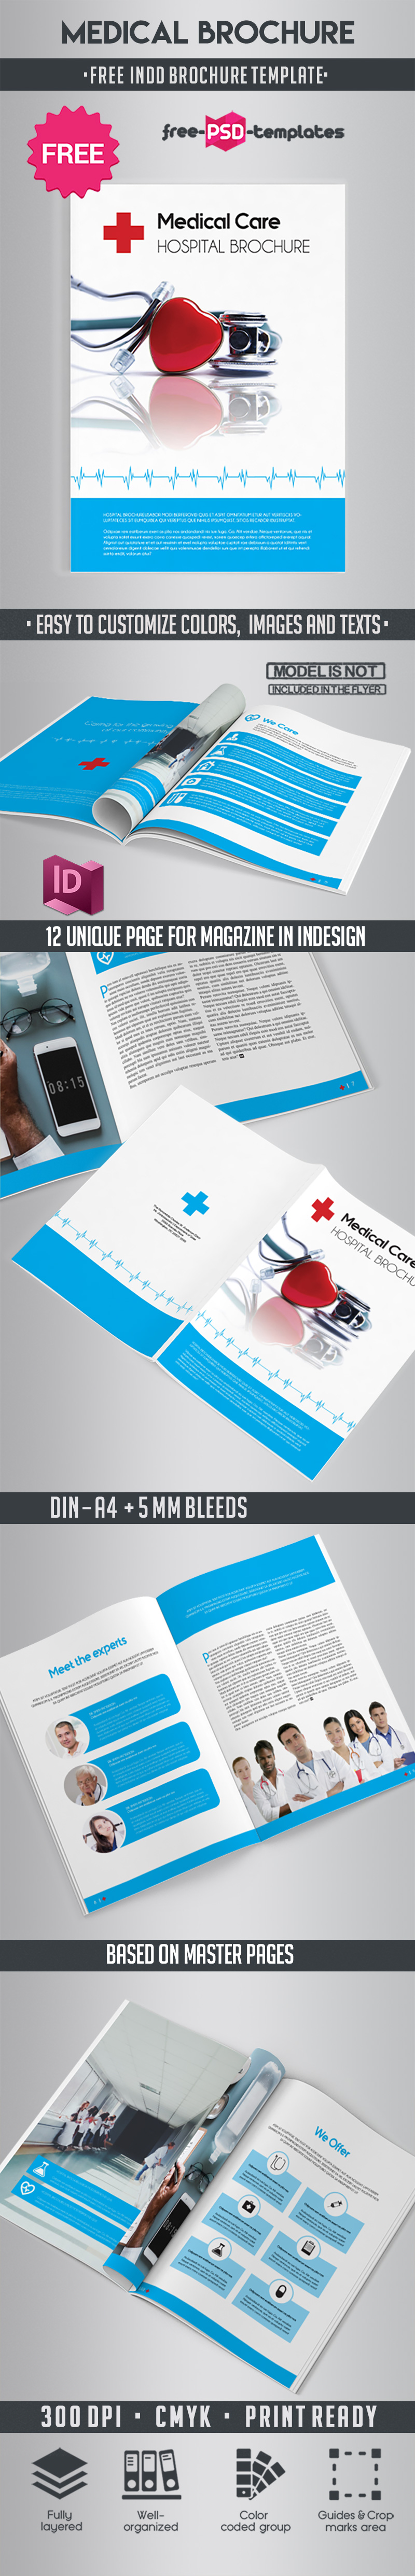 Free Medical Brochure Indd Template Free Psd Templates